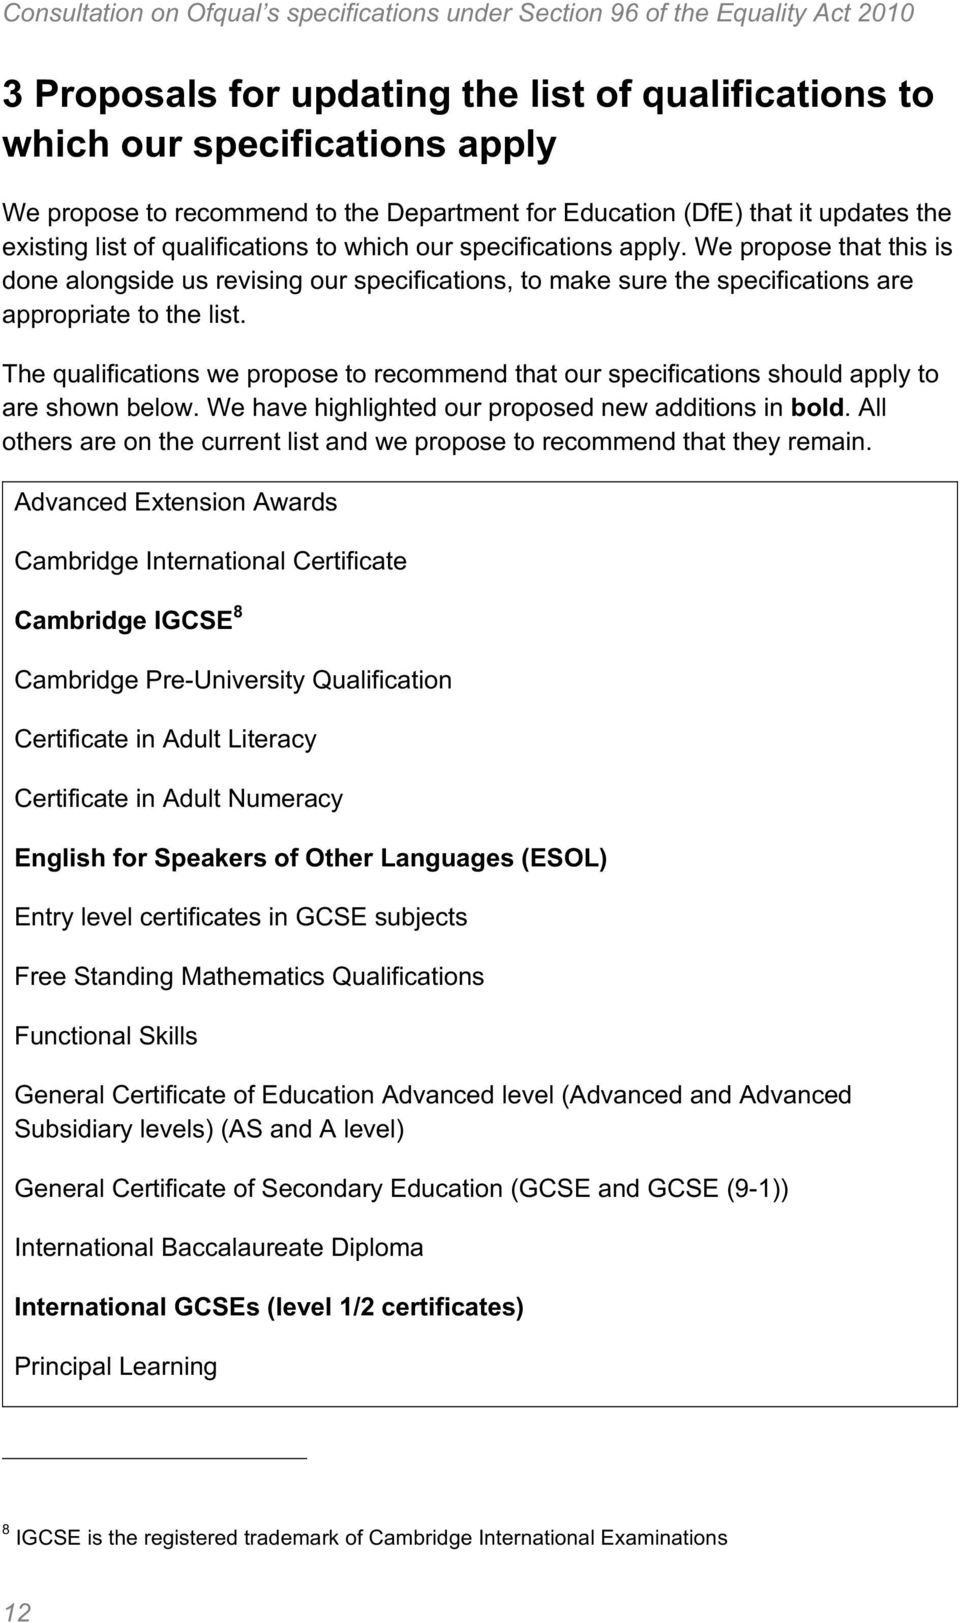 The qualifications we propose to recommend that our specifications should apply to are shown below. We have highlighted our proposed new additions in bold.